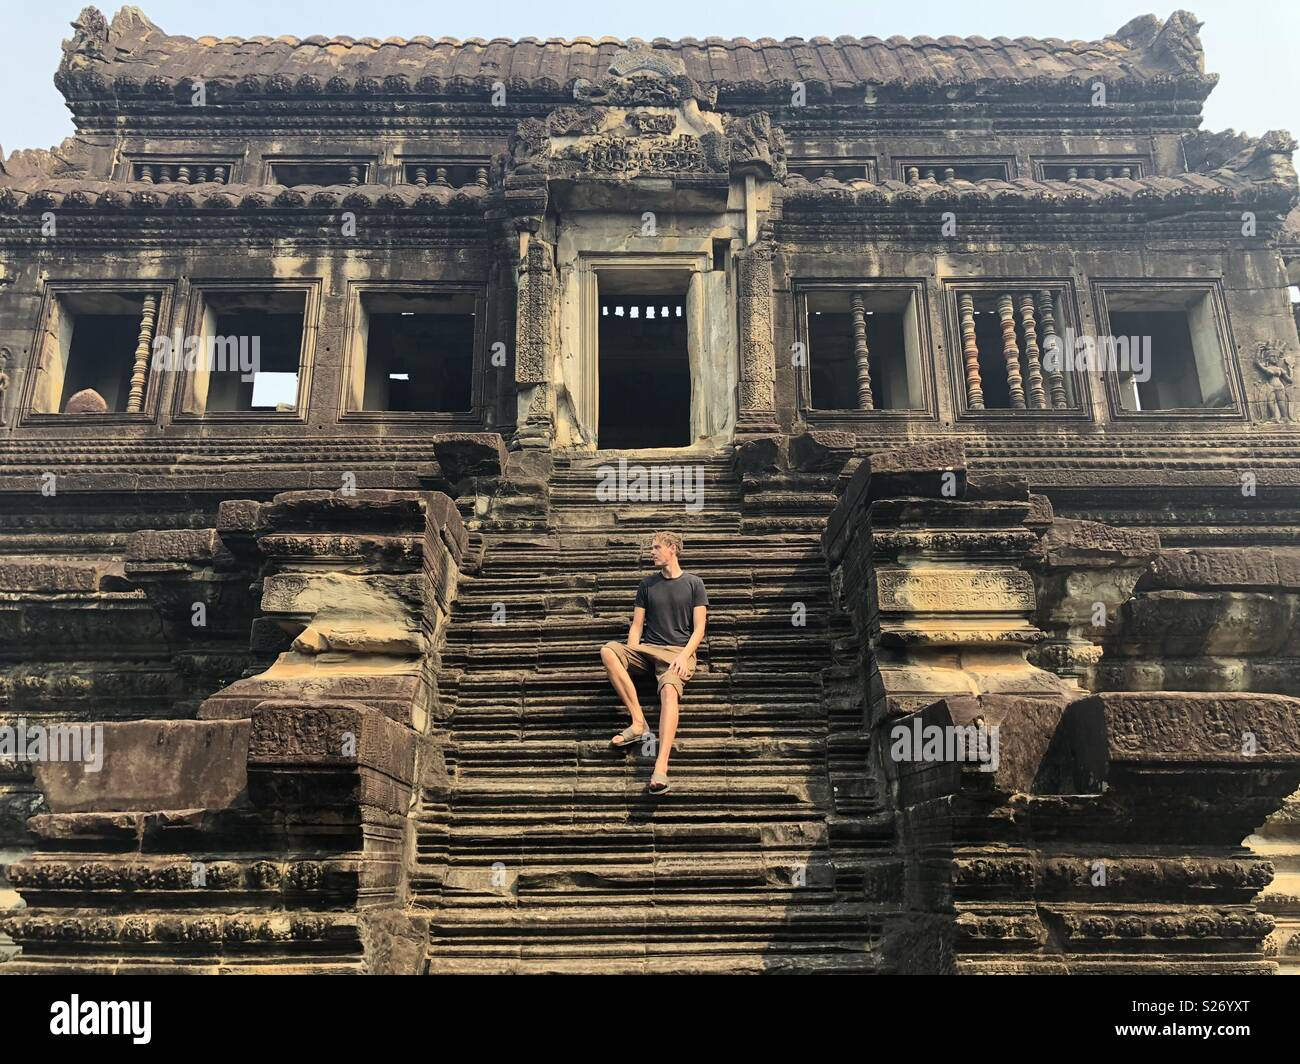 Temples of Angkor Wat ruins in Cambodia with man on steps - Stock Image